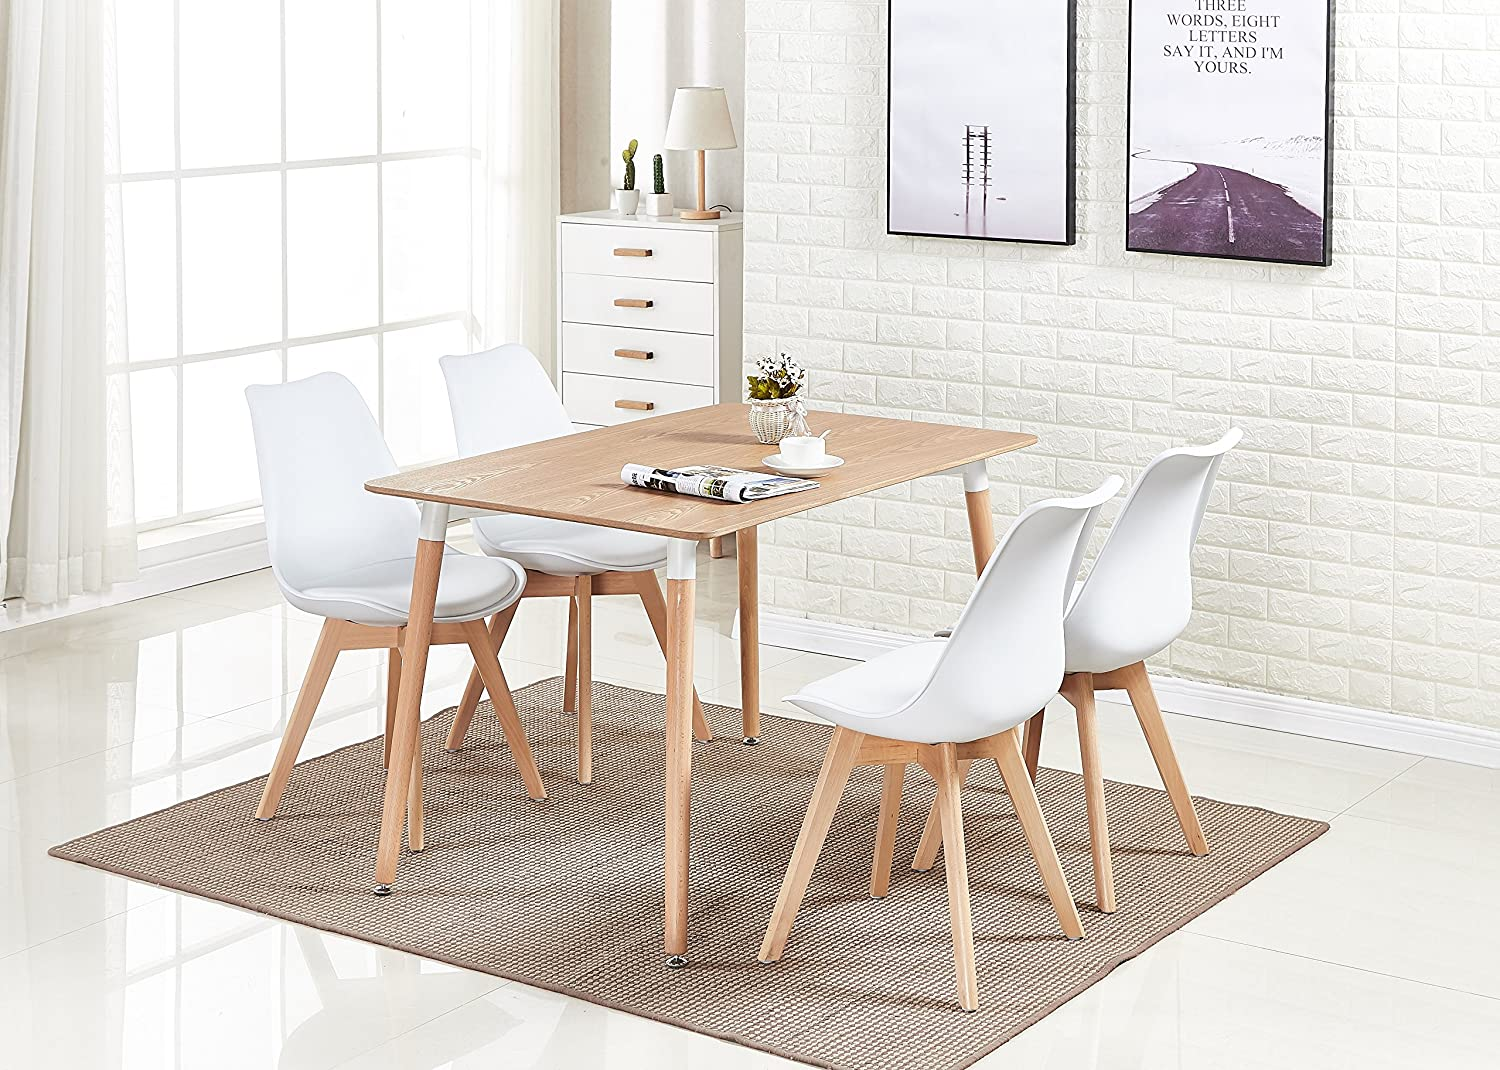 P N Homewares Lorenzo Dining Table And 4 Chairs Set Retro And Modern Scandinavian Dining Set White Black Grey Red Pink Green Chairs With Wood Brown Dining Table White Amazon Co Uk Kitchen Home